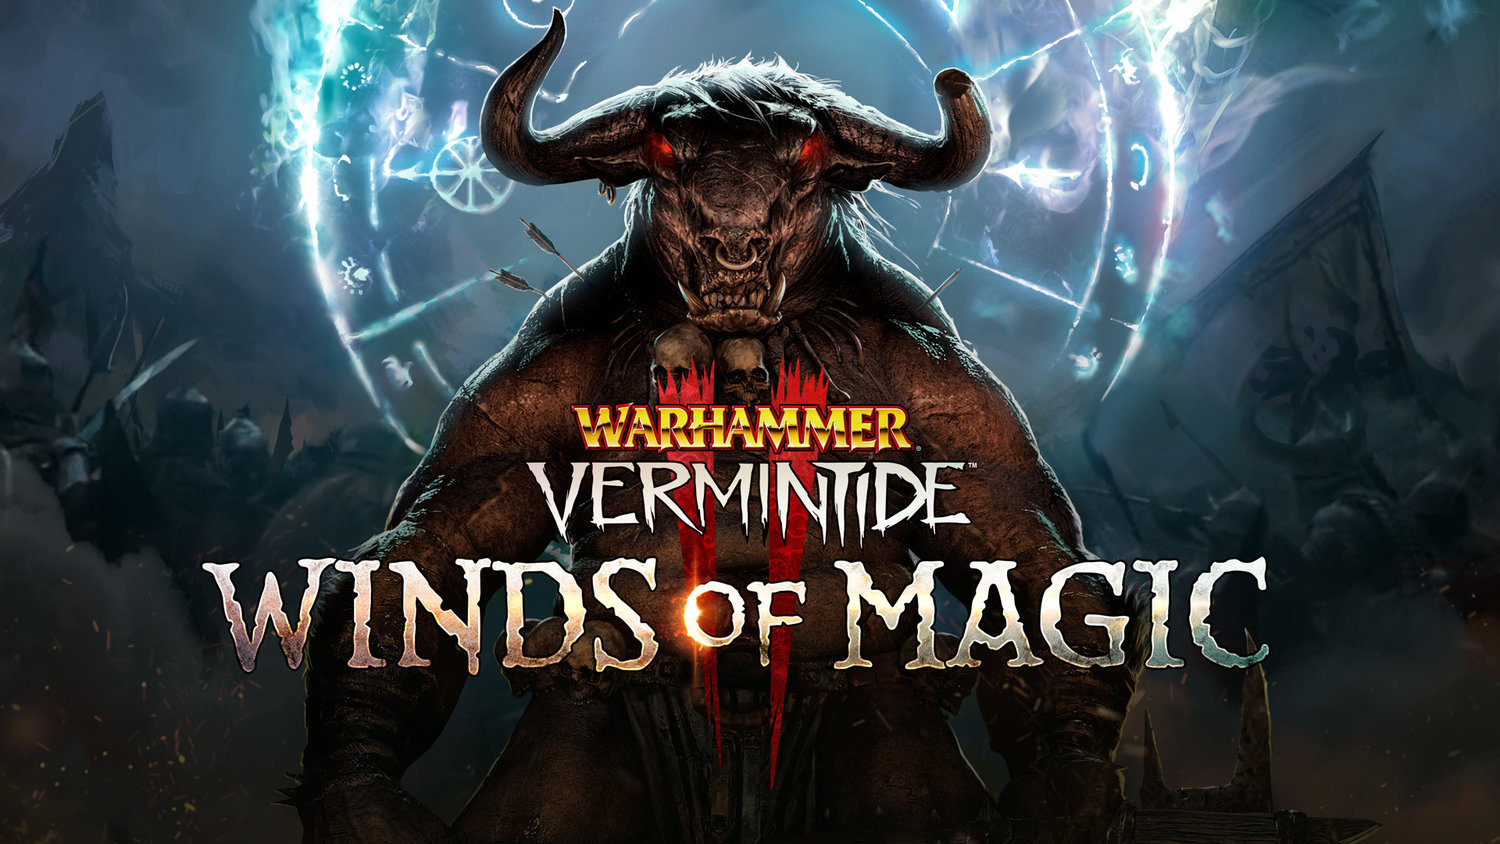 Warhammer: Vermintide 2 - Winds of Magic Pre-Order Now